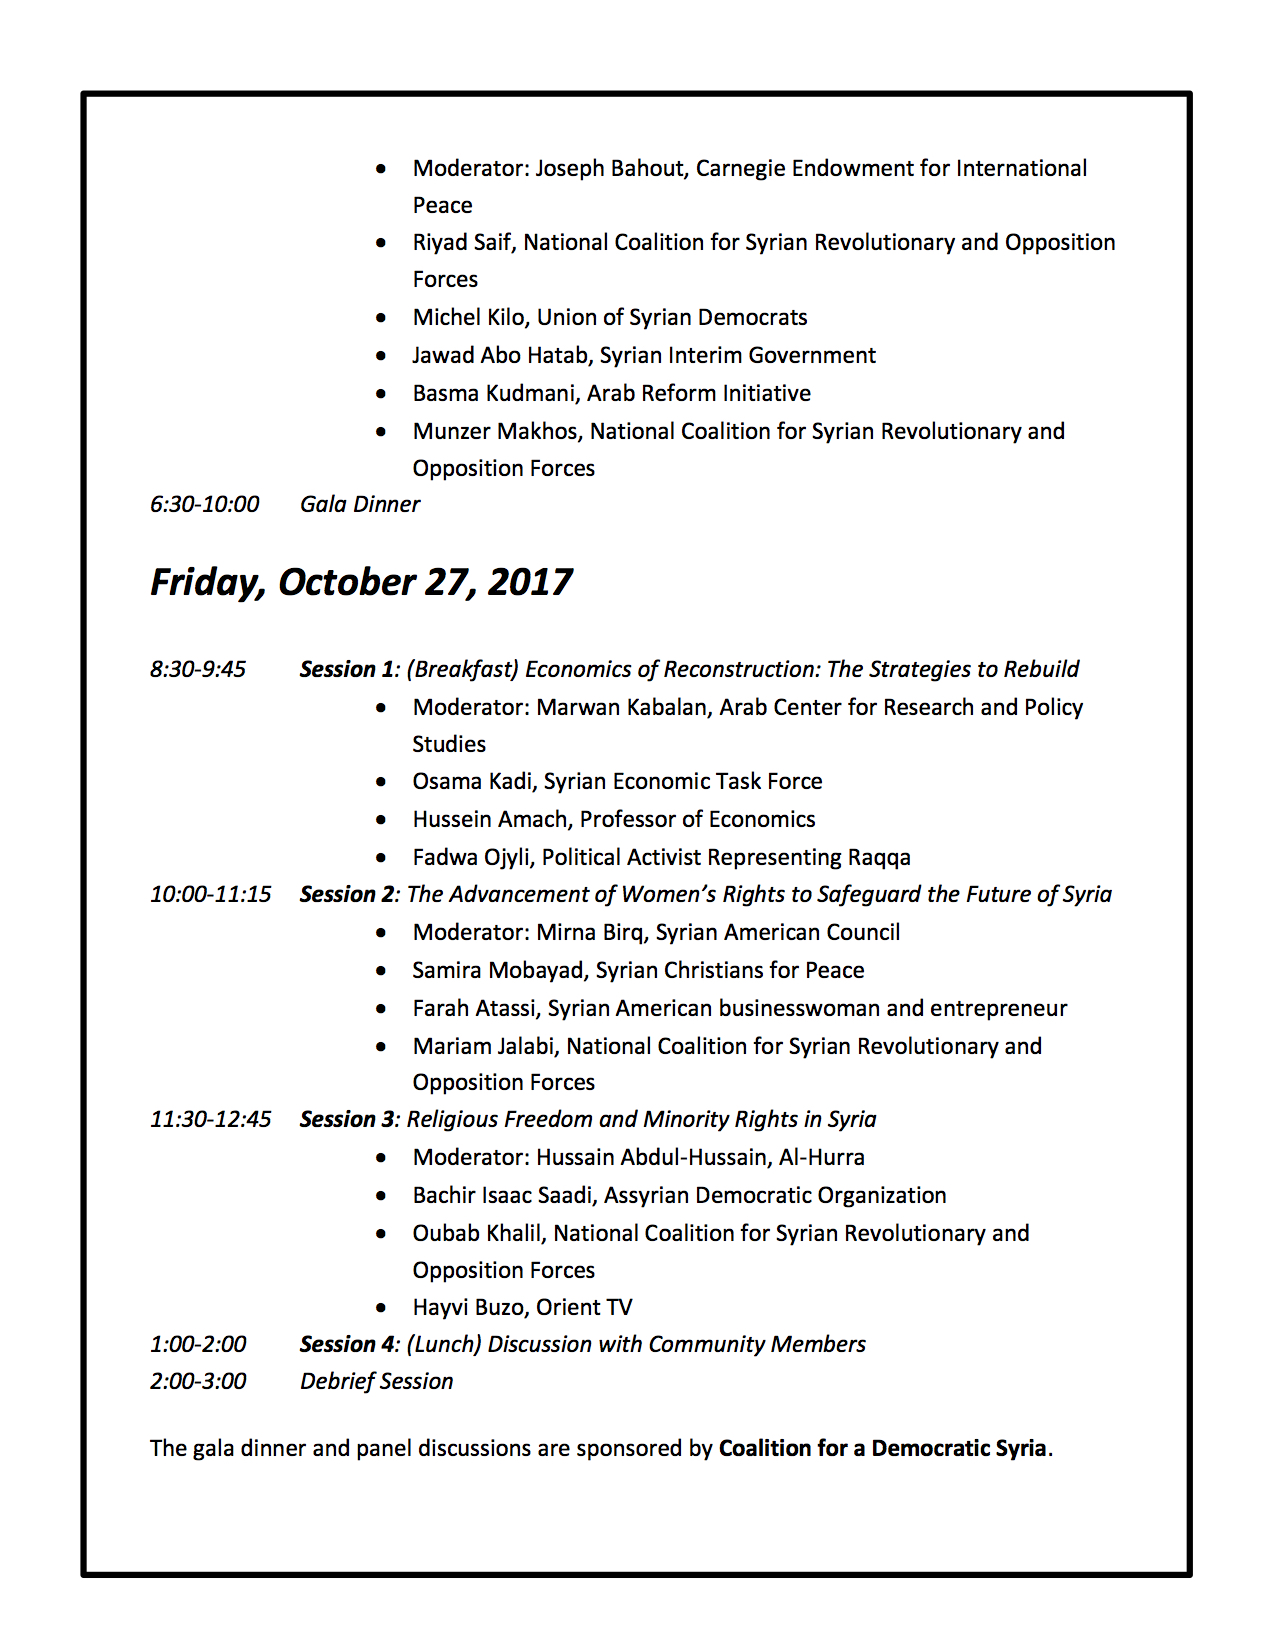 Syria Policy Forum - Agenda with Speakers2.jpg